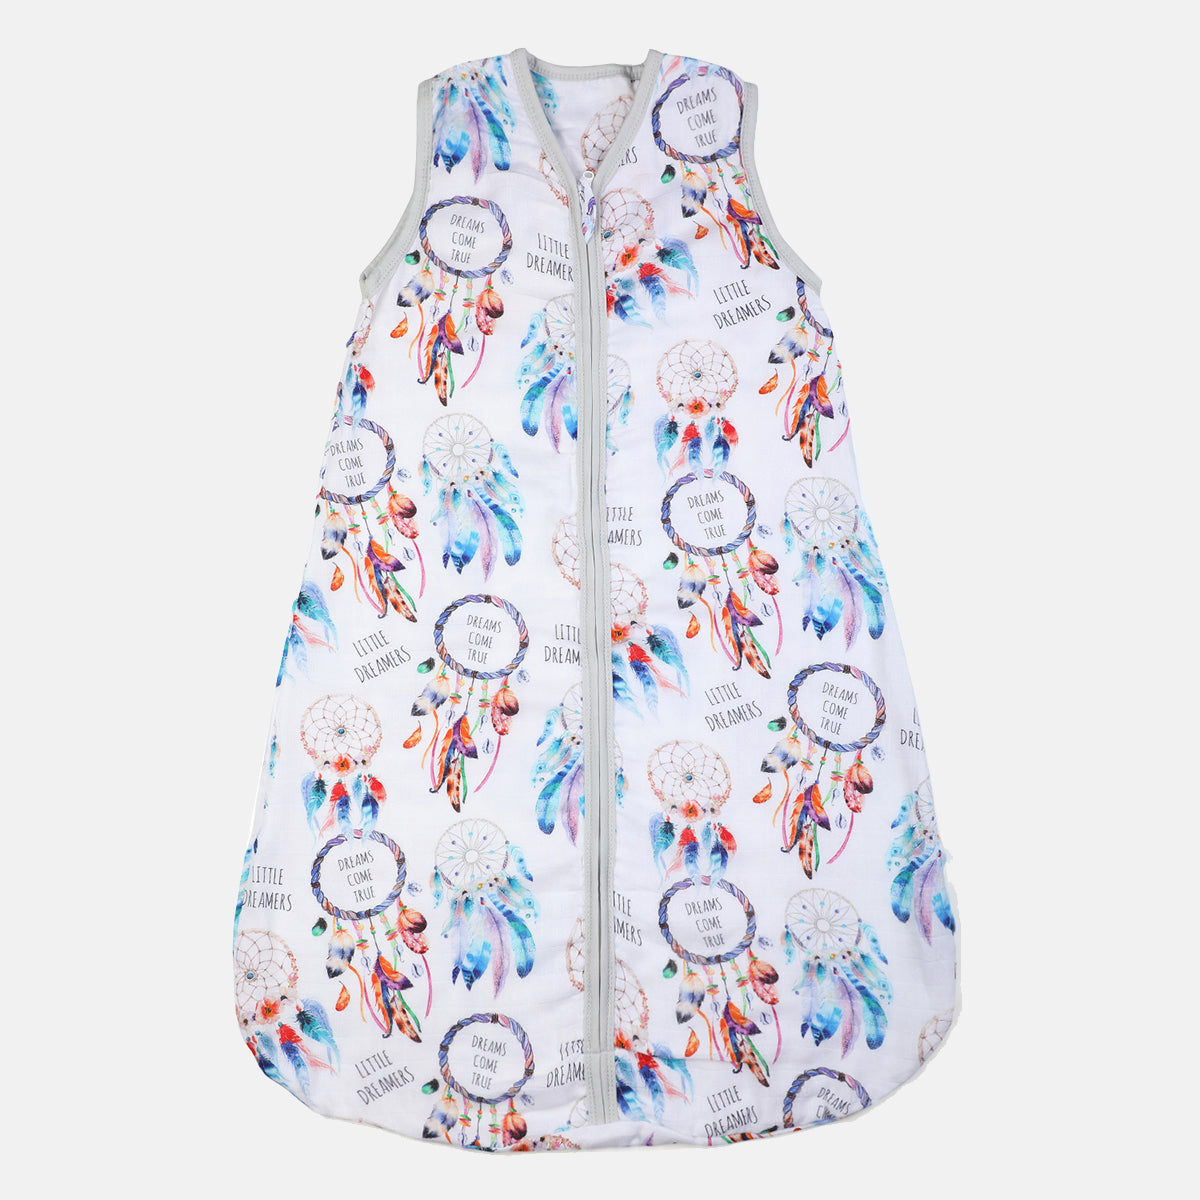 Dreamcatcher 4 layer Sleep Bag Super Soft Muslin